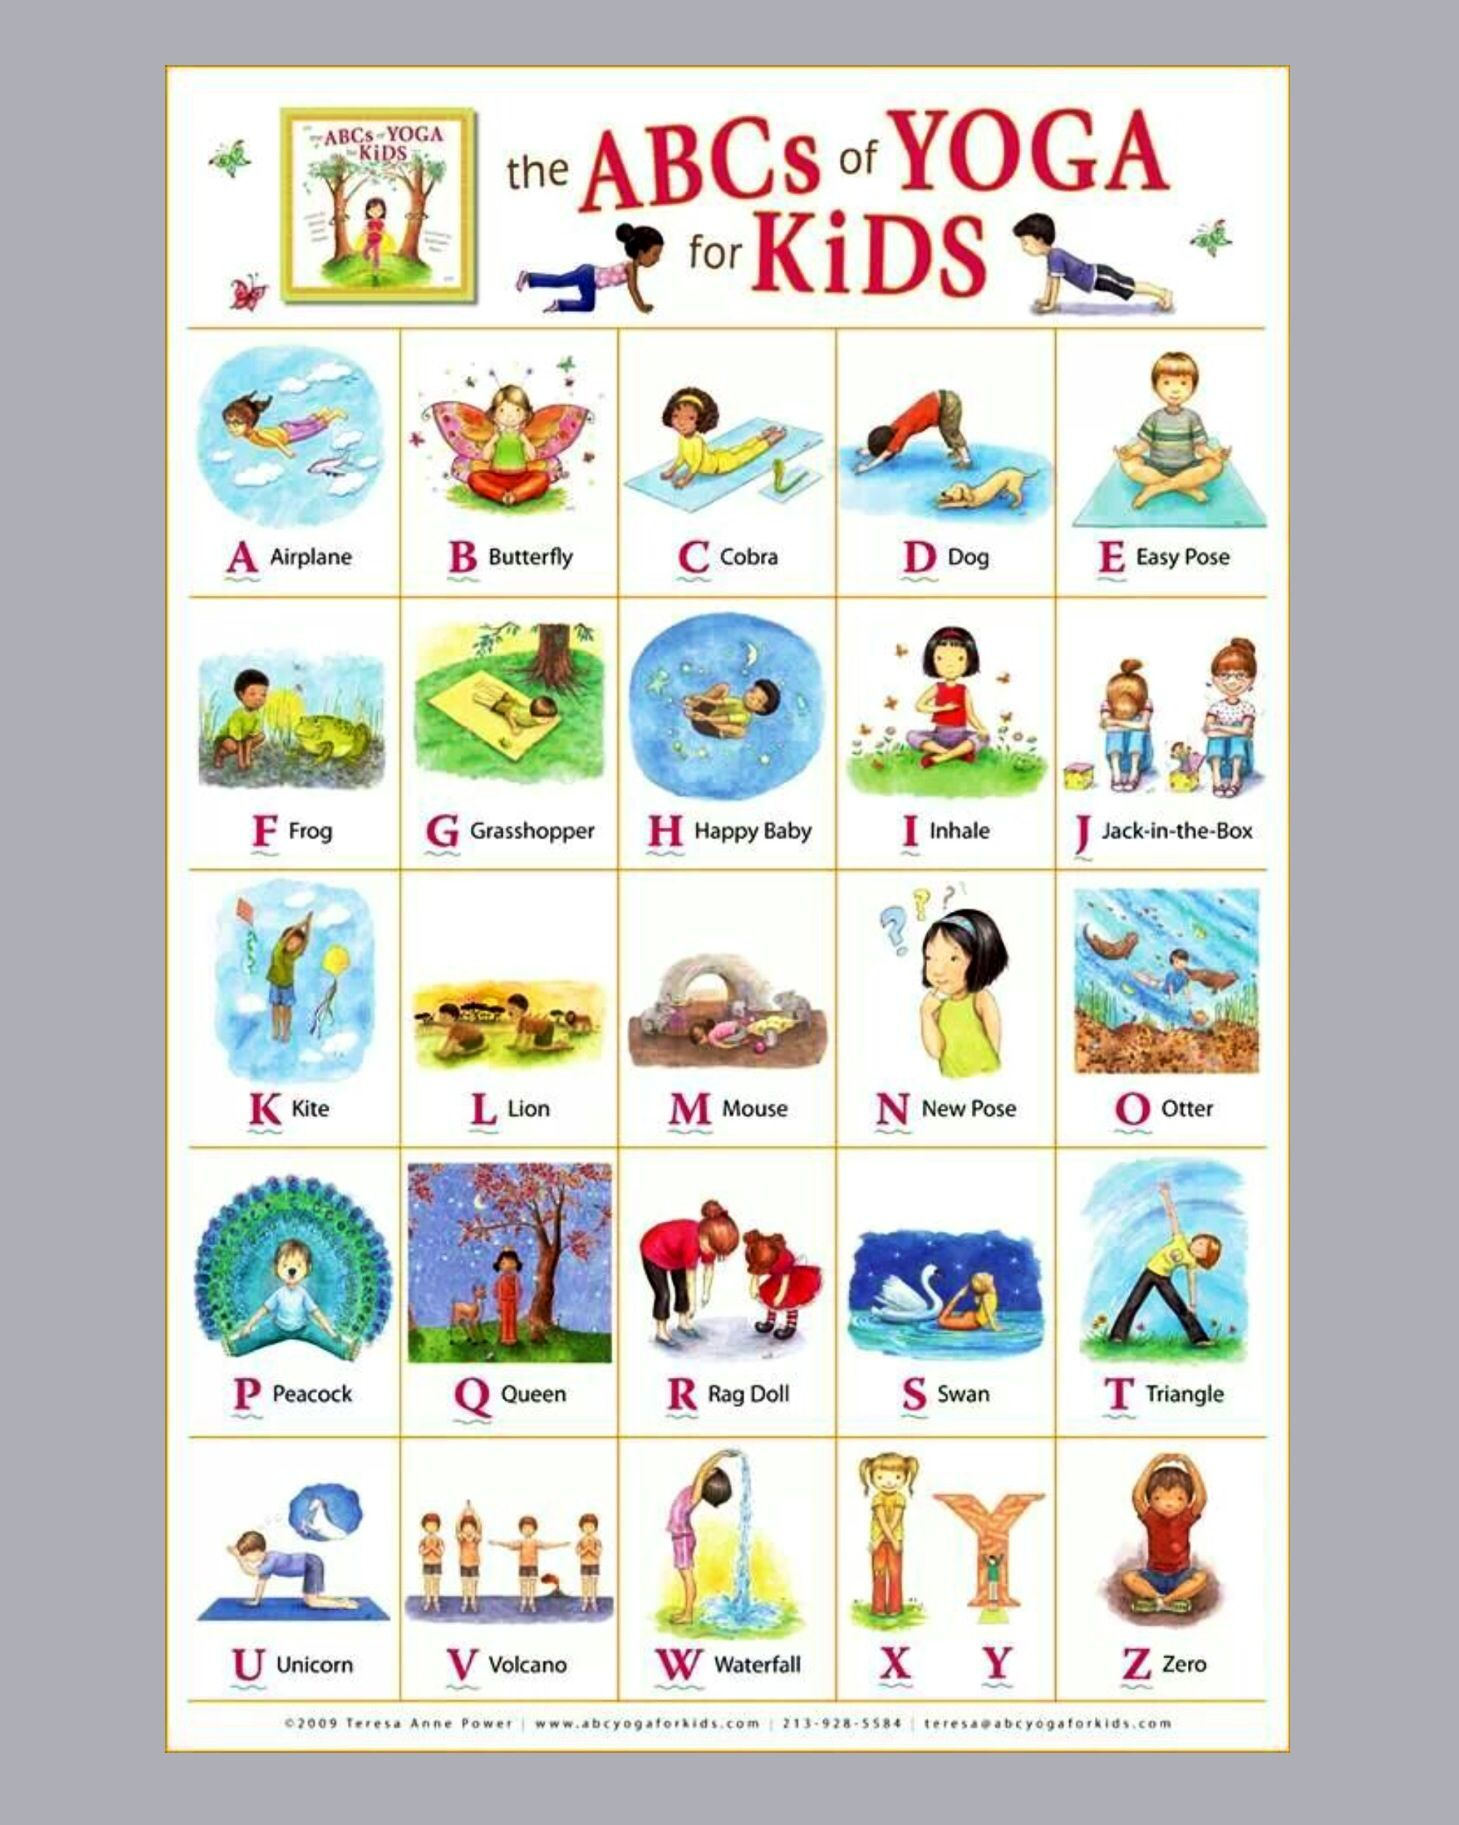 Abc yoga for kids health well being pinterest yoga abc yoga for kids altavistaventures Images